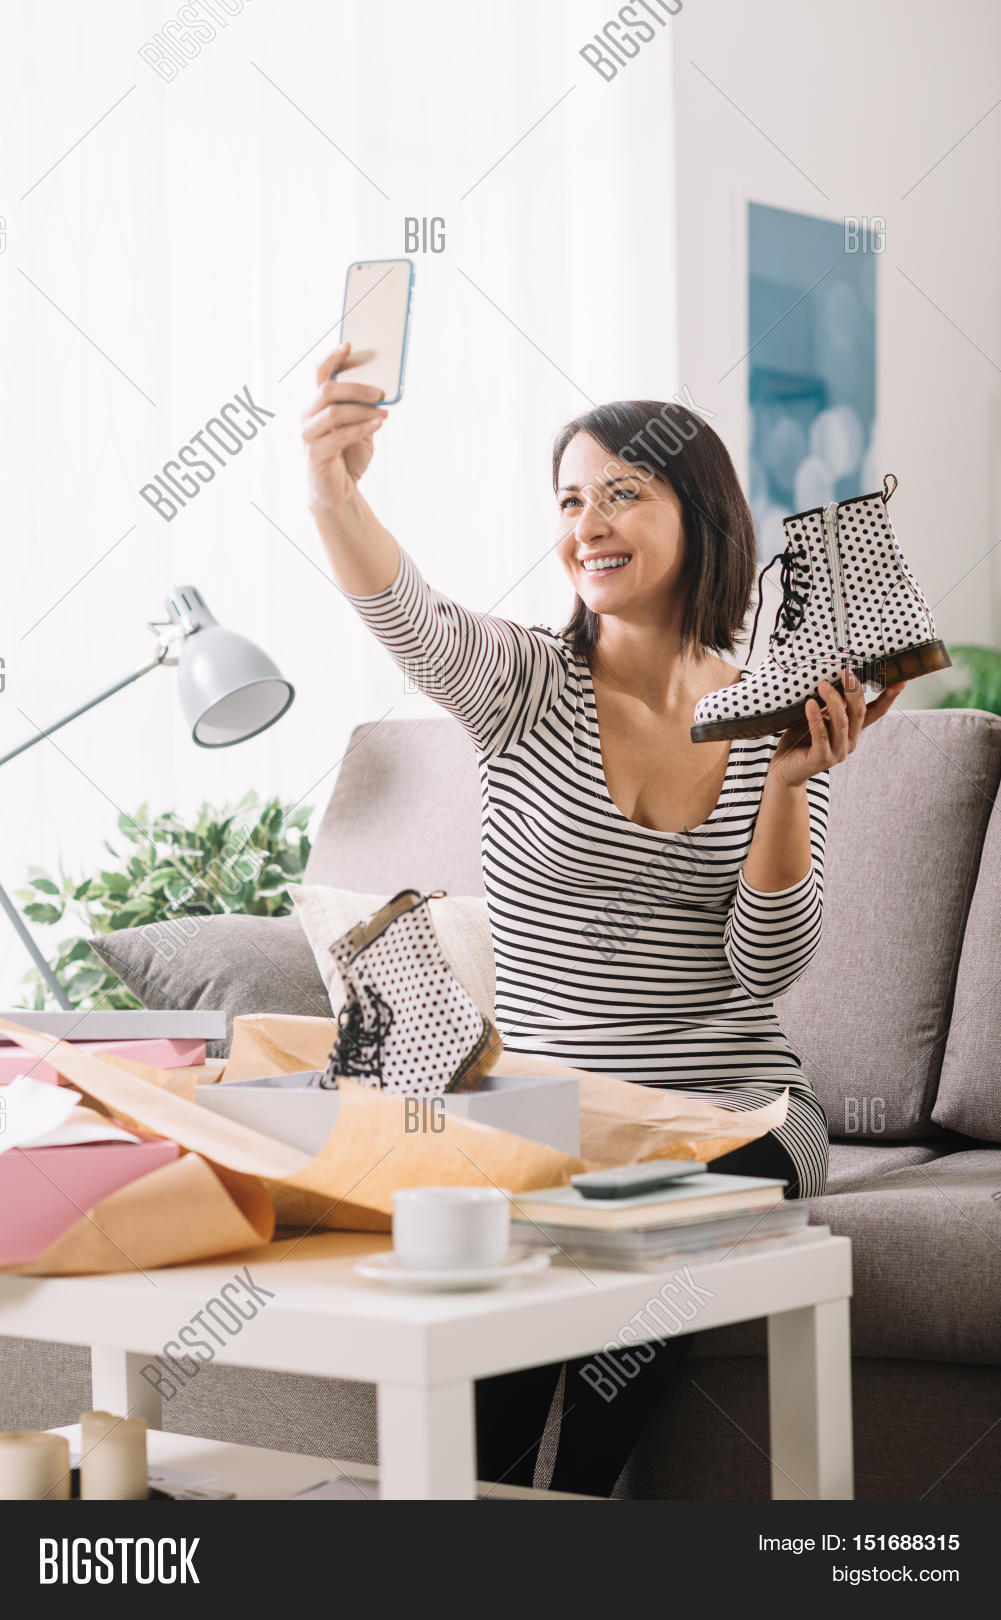 Smiling Woman Unboxing Image Photo Free Trial Bigstock